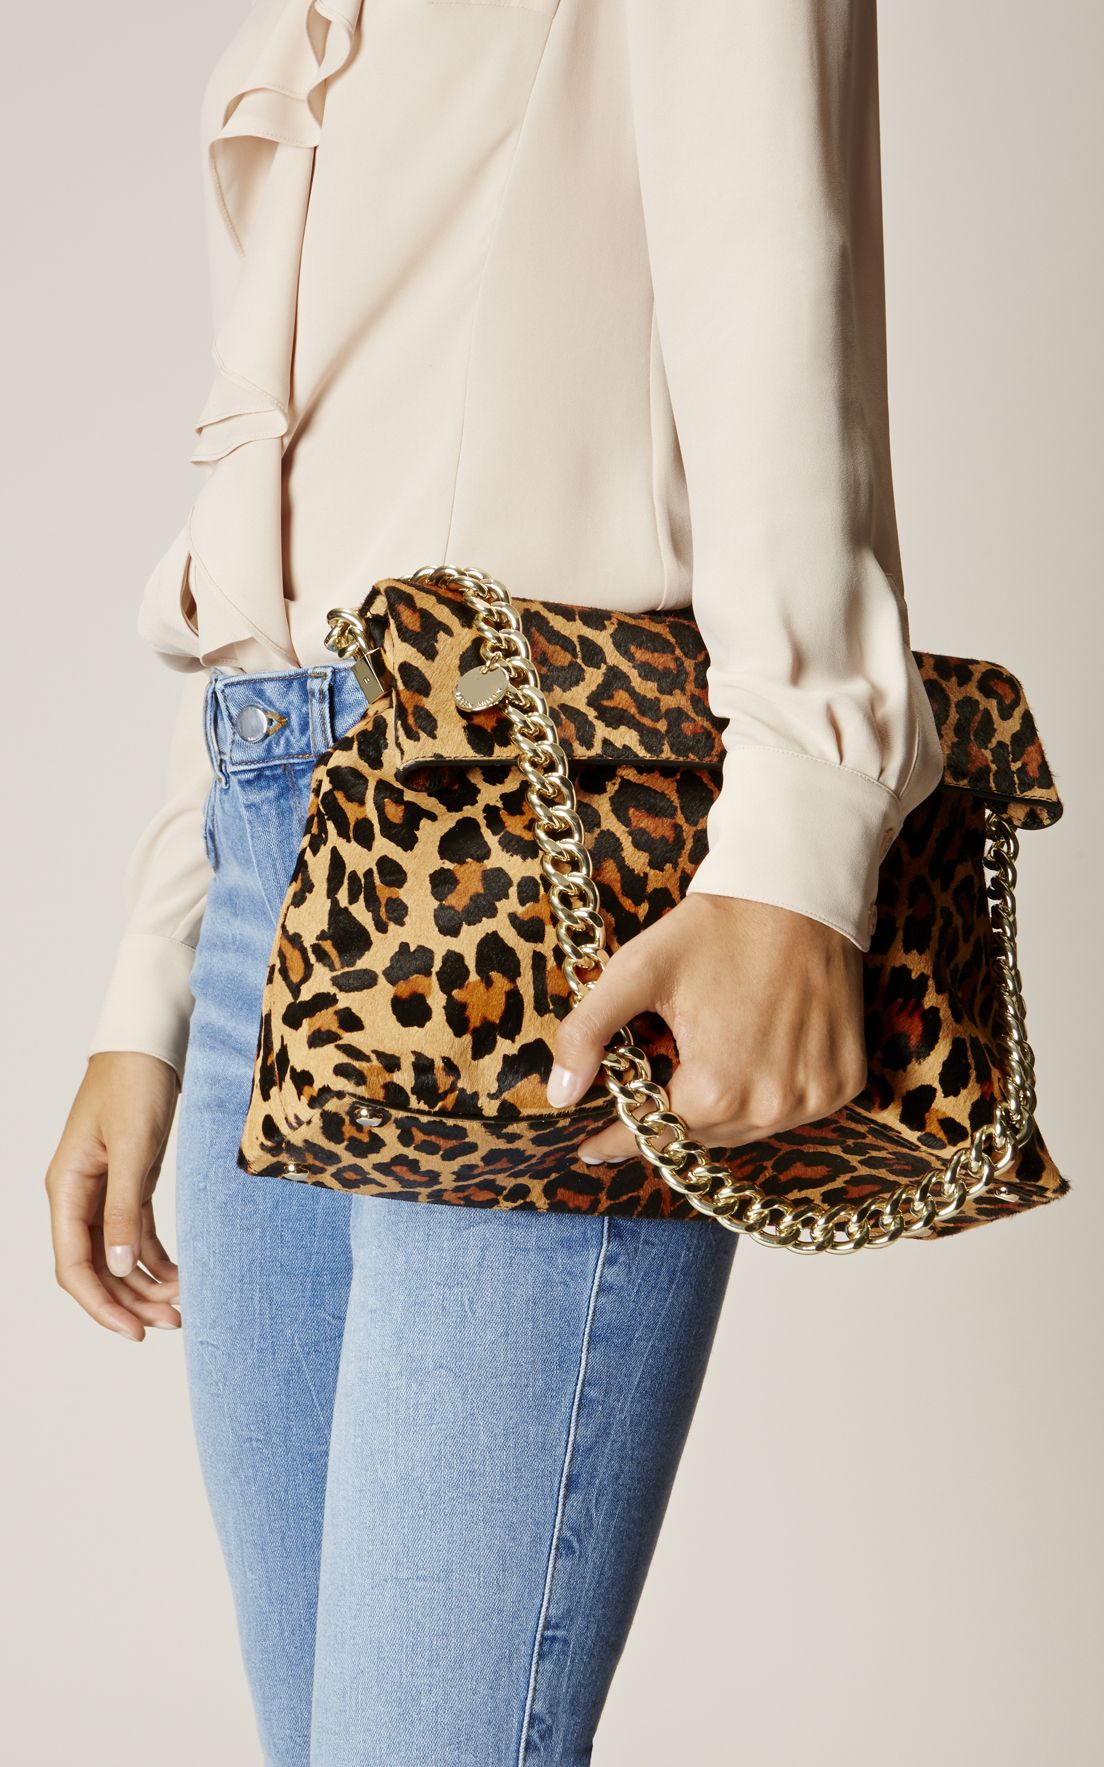 cf84f331a3 Karen Millen, REGENT SUEDE AND LEATHER BAG Leopard Print | Shoes ...